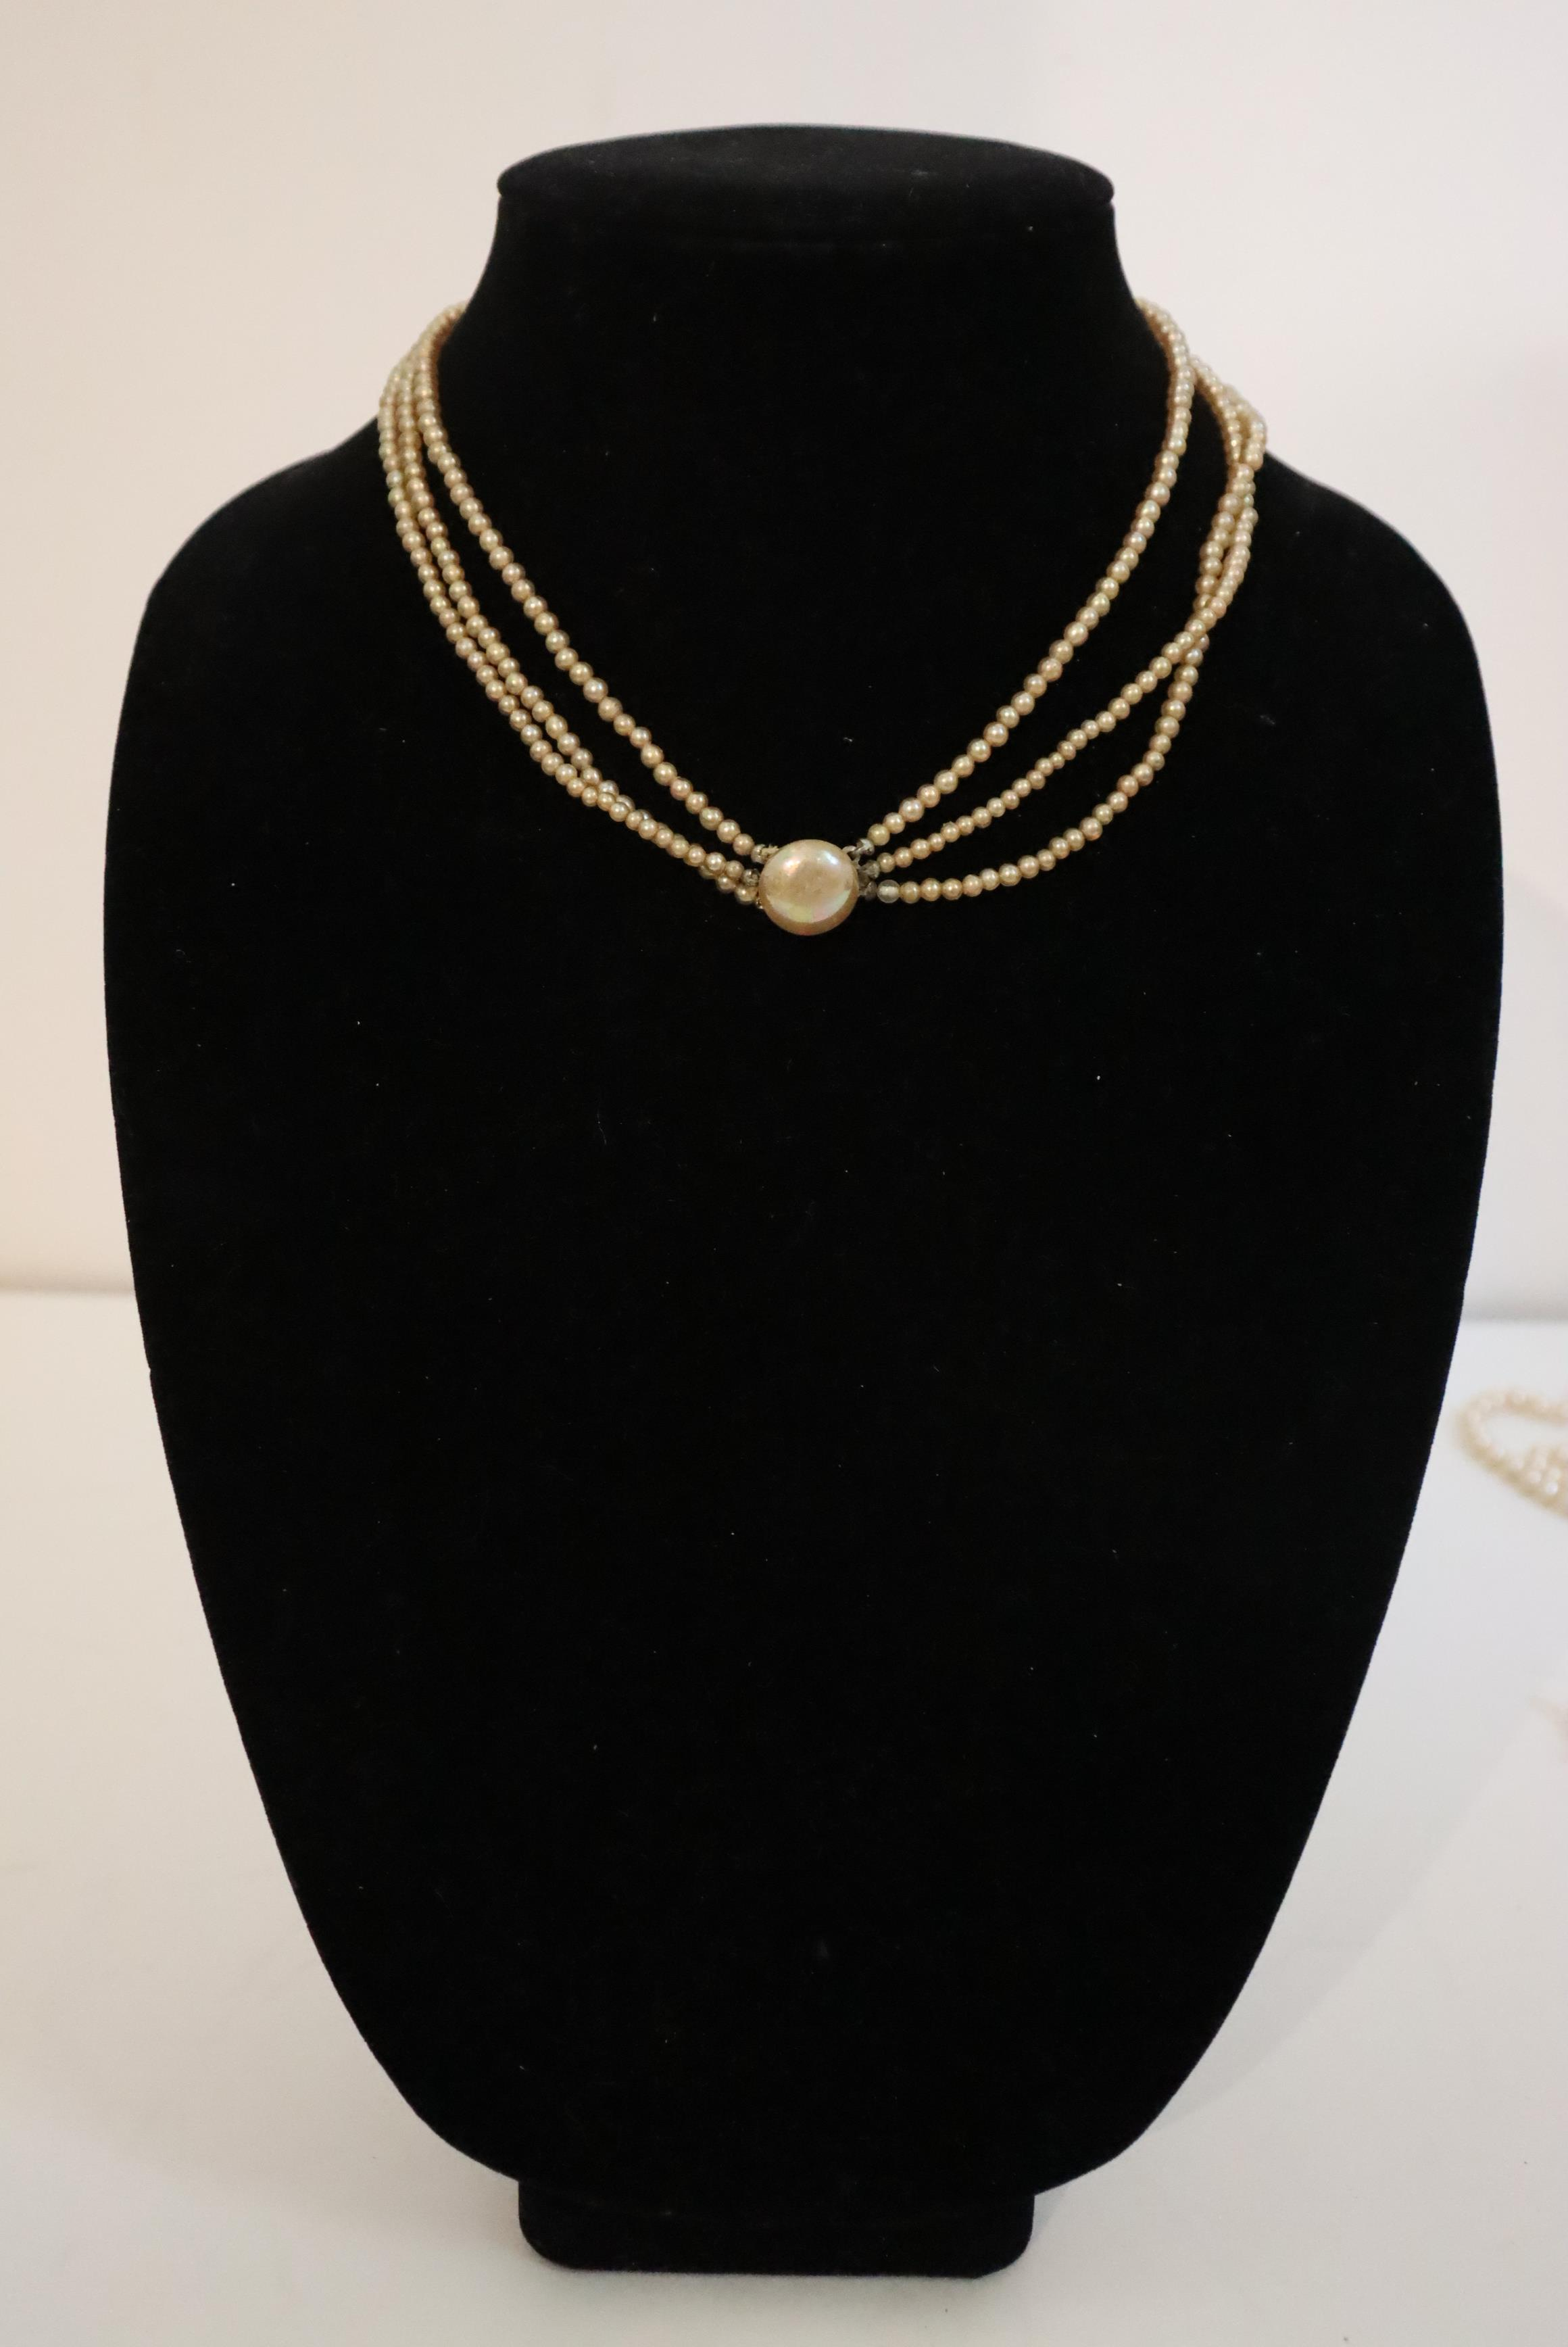 Large Collection of (10) Pearl / Beaded Necklaces - Image 7 of 20